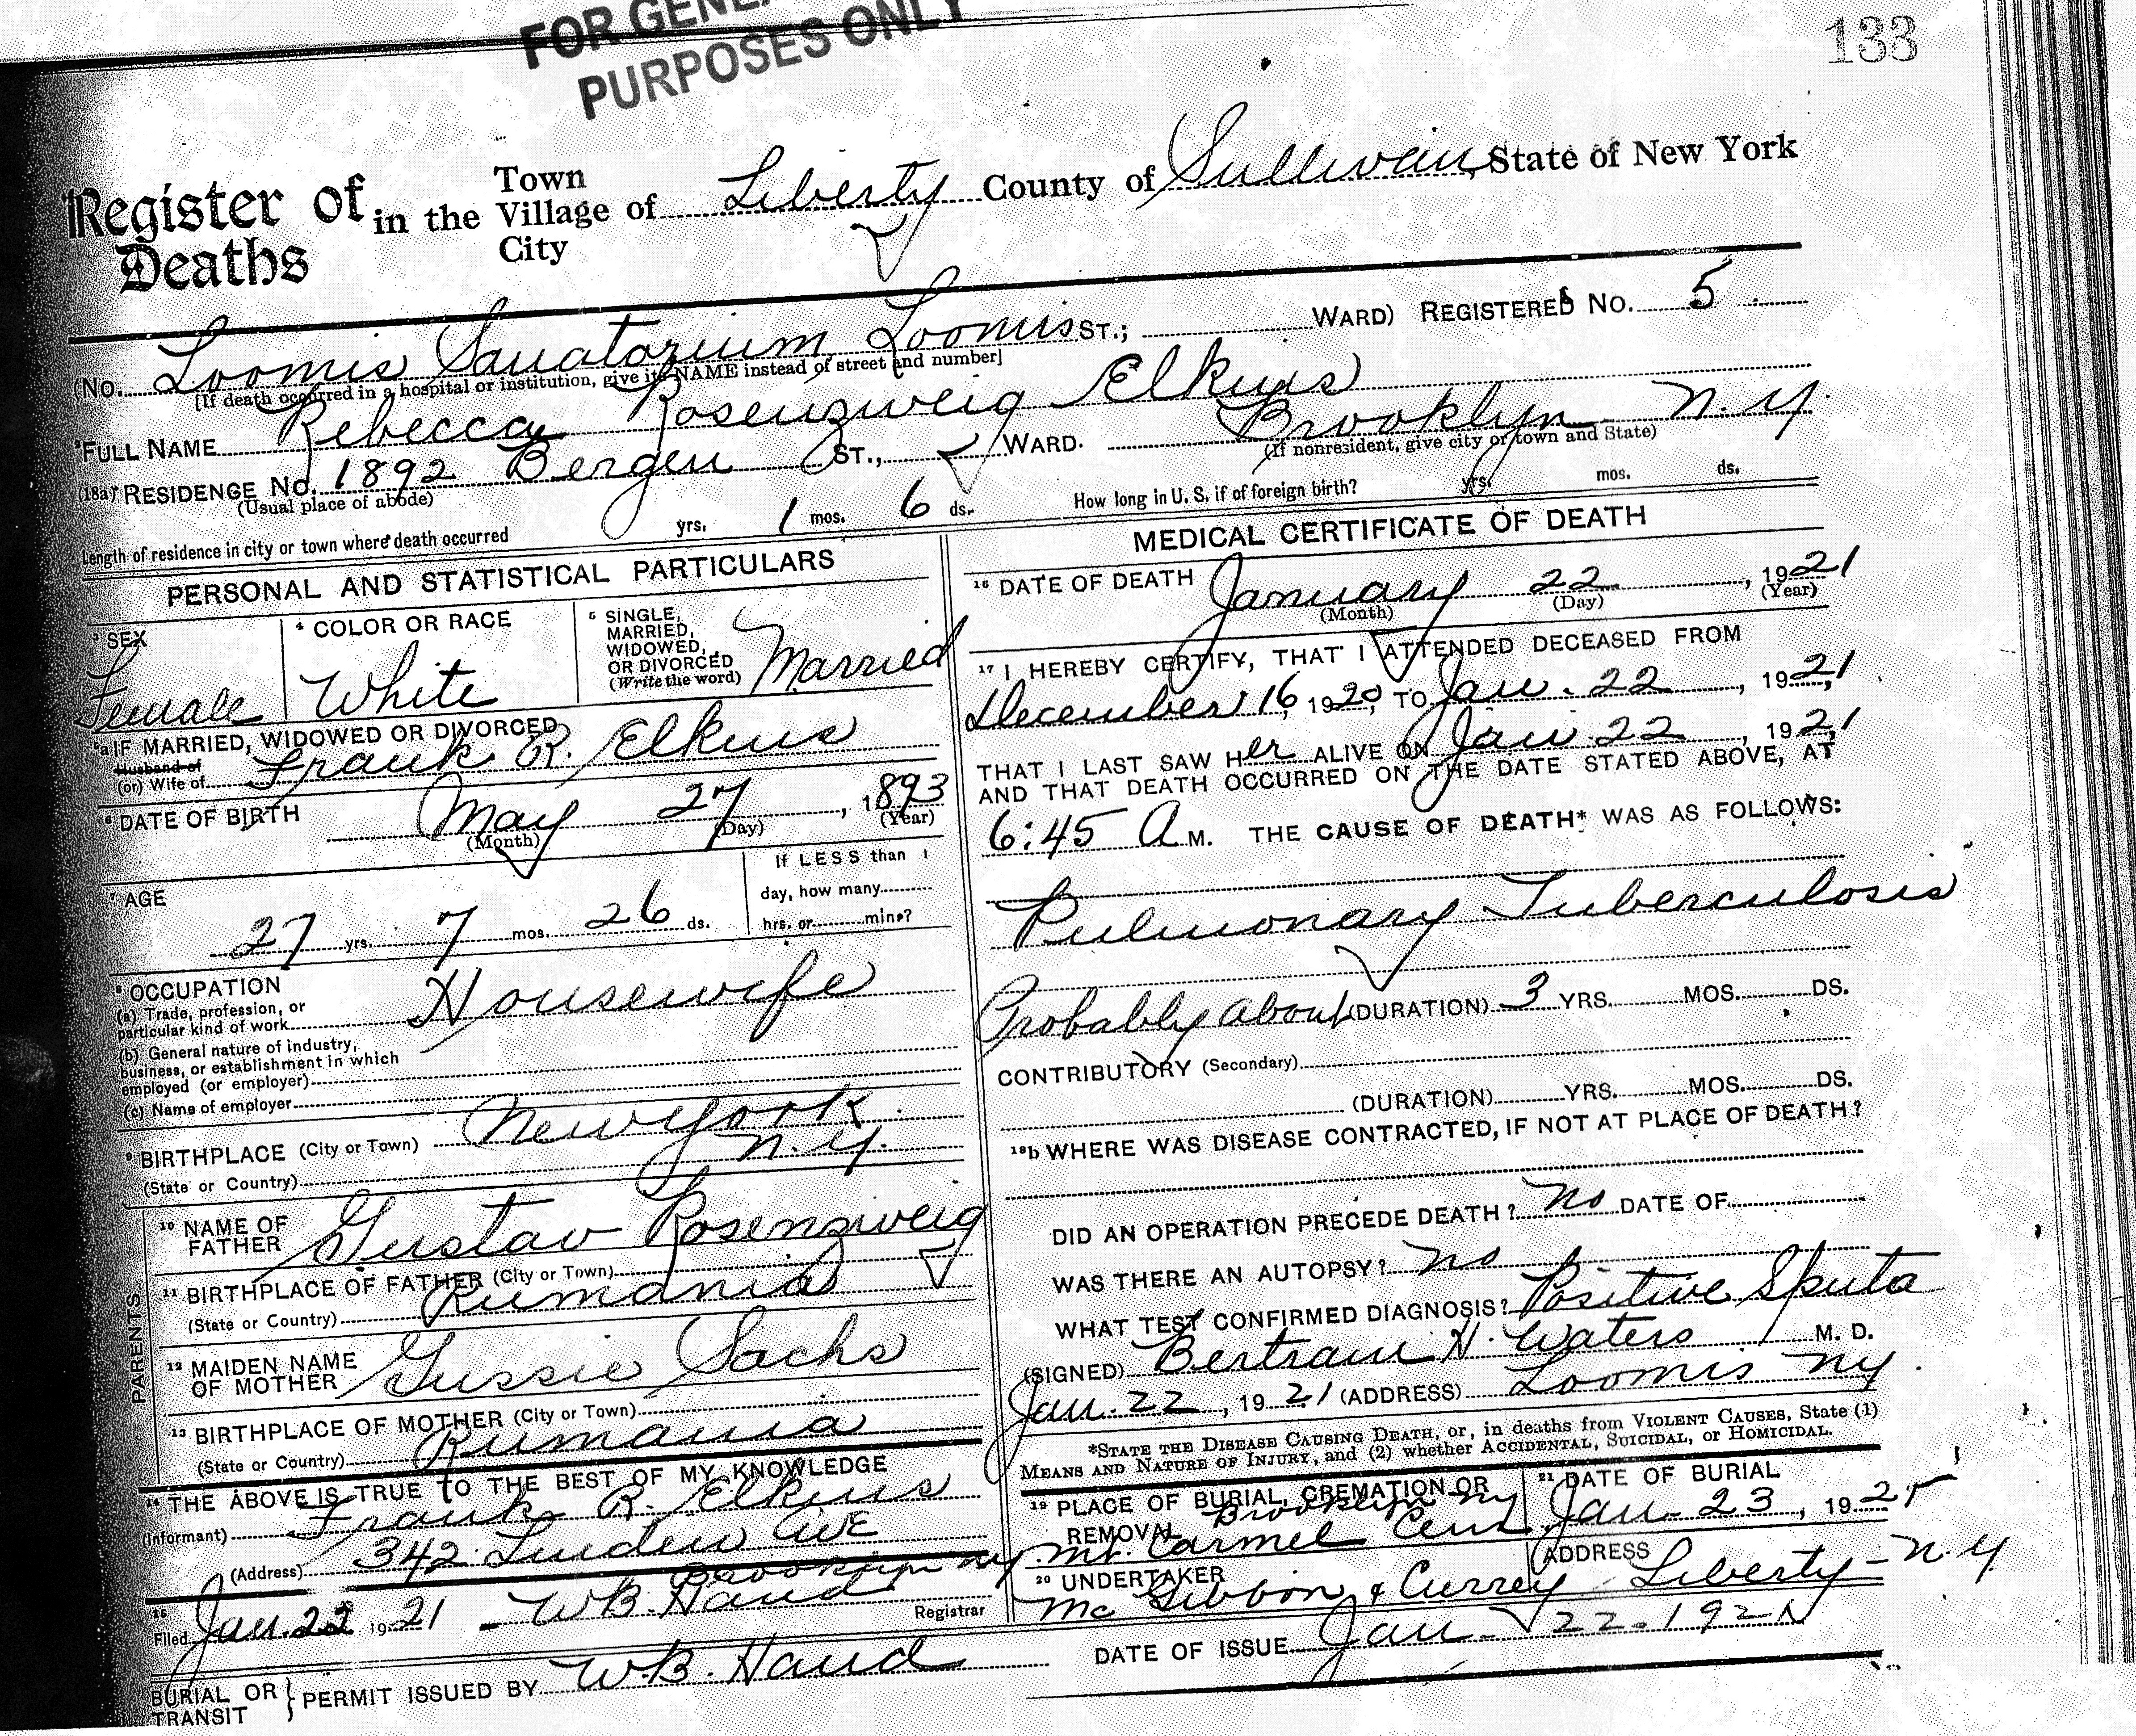 Death certificate brotmanblog a family journey page 2 rebecca elkin death certificate 1betcityfo Choice Image